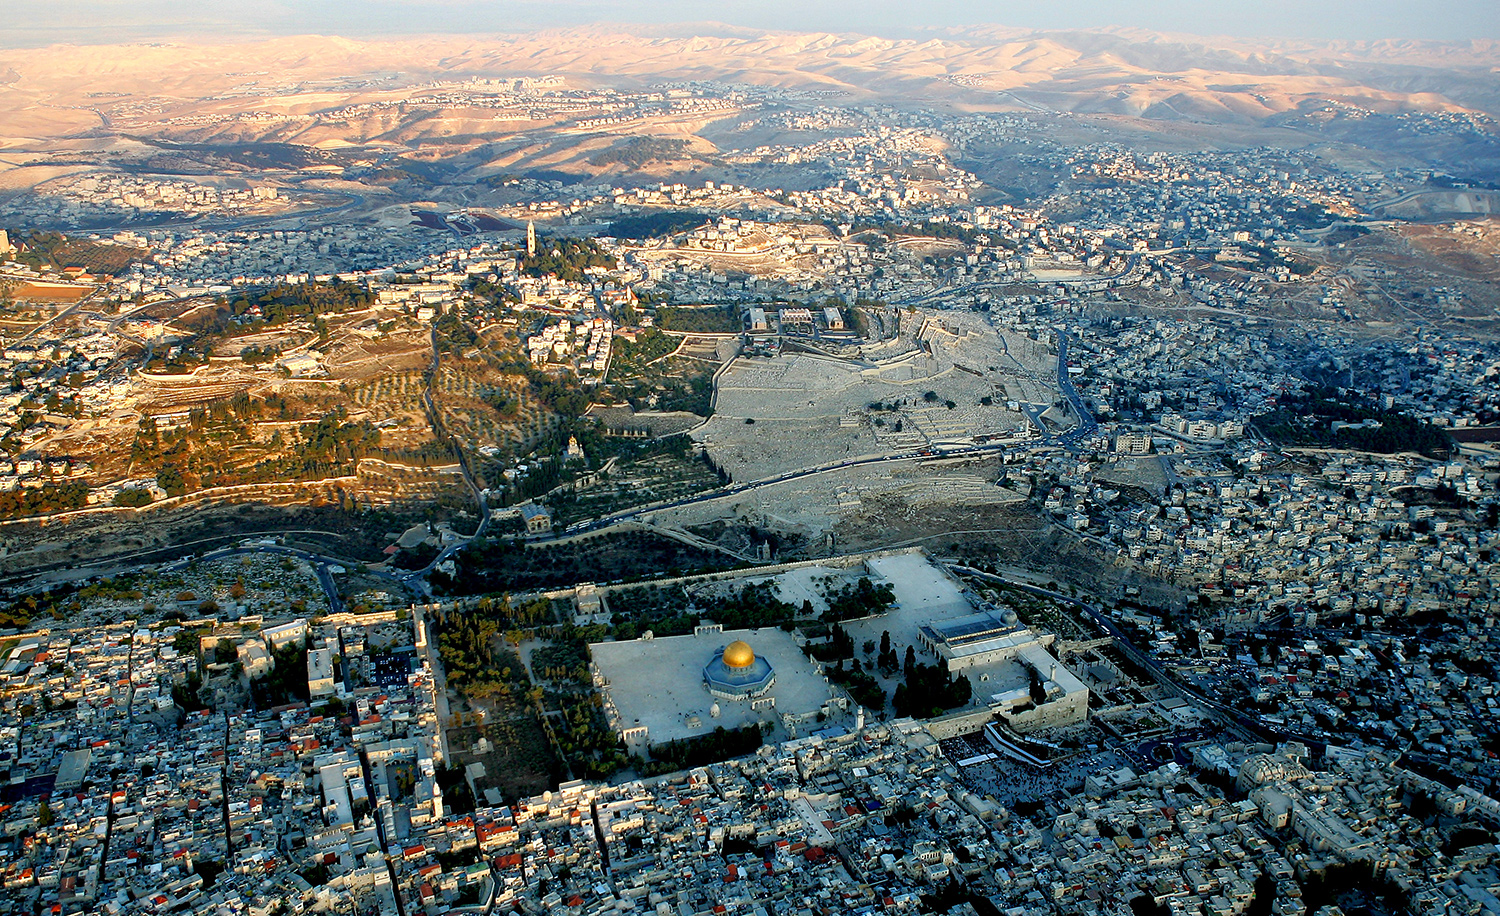 Jerusalem in 2005. David Silverman/Getty Images.